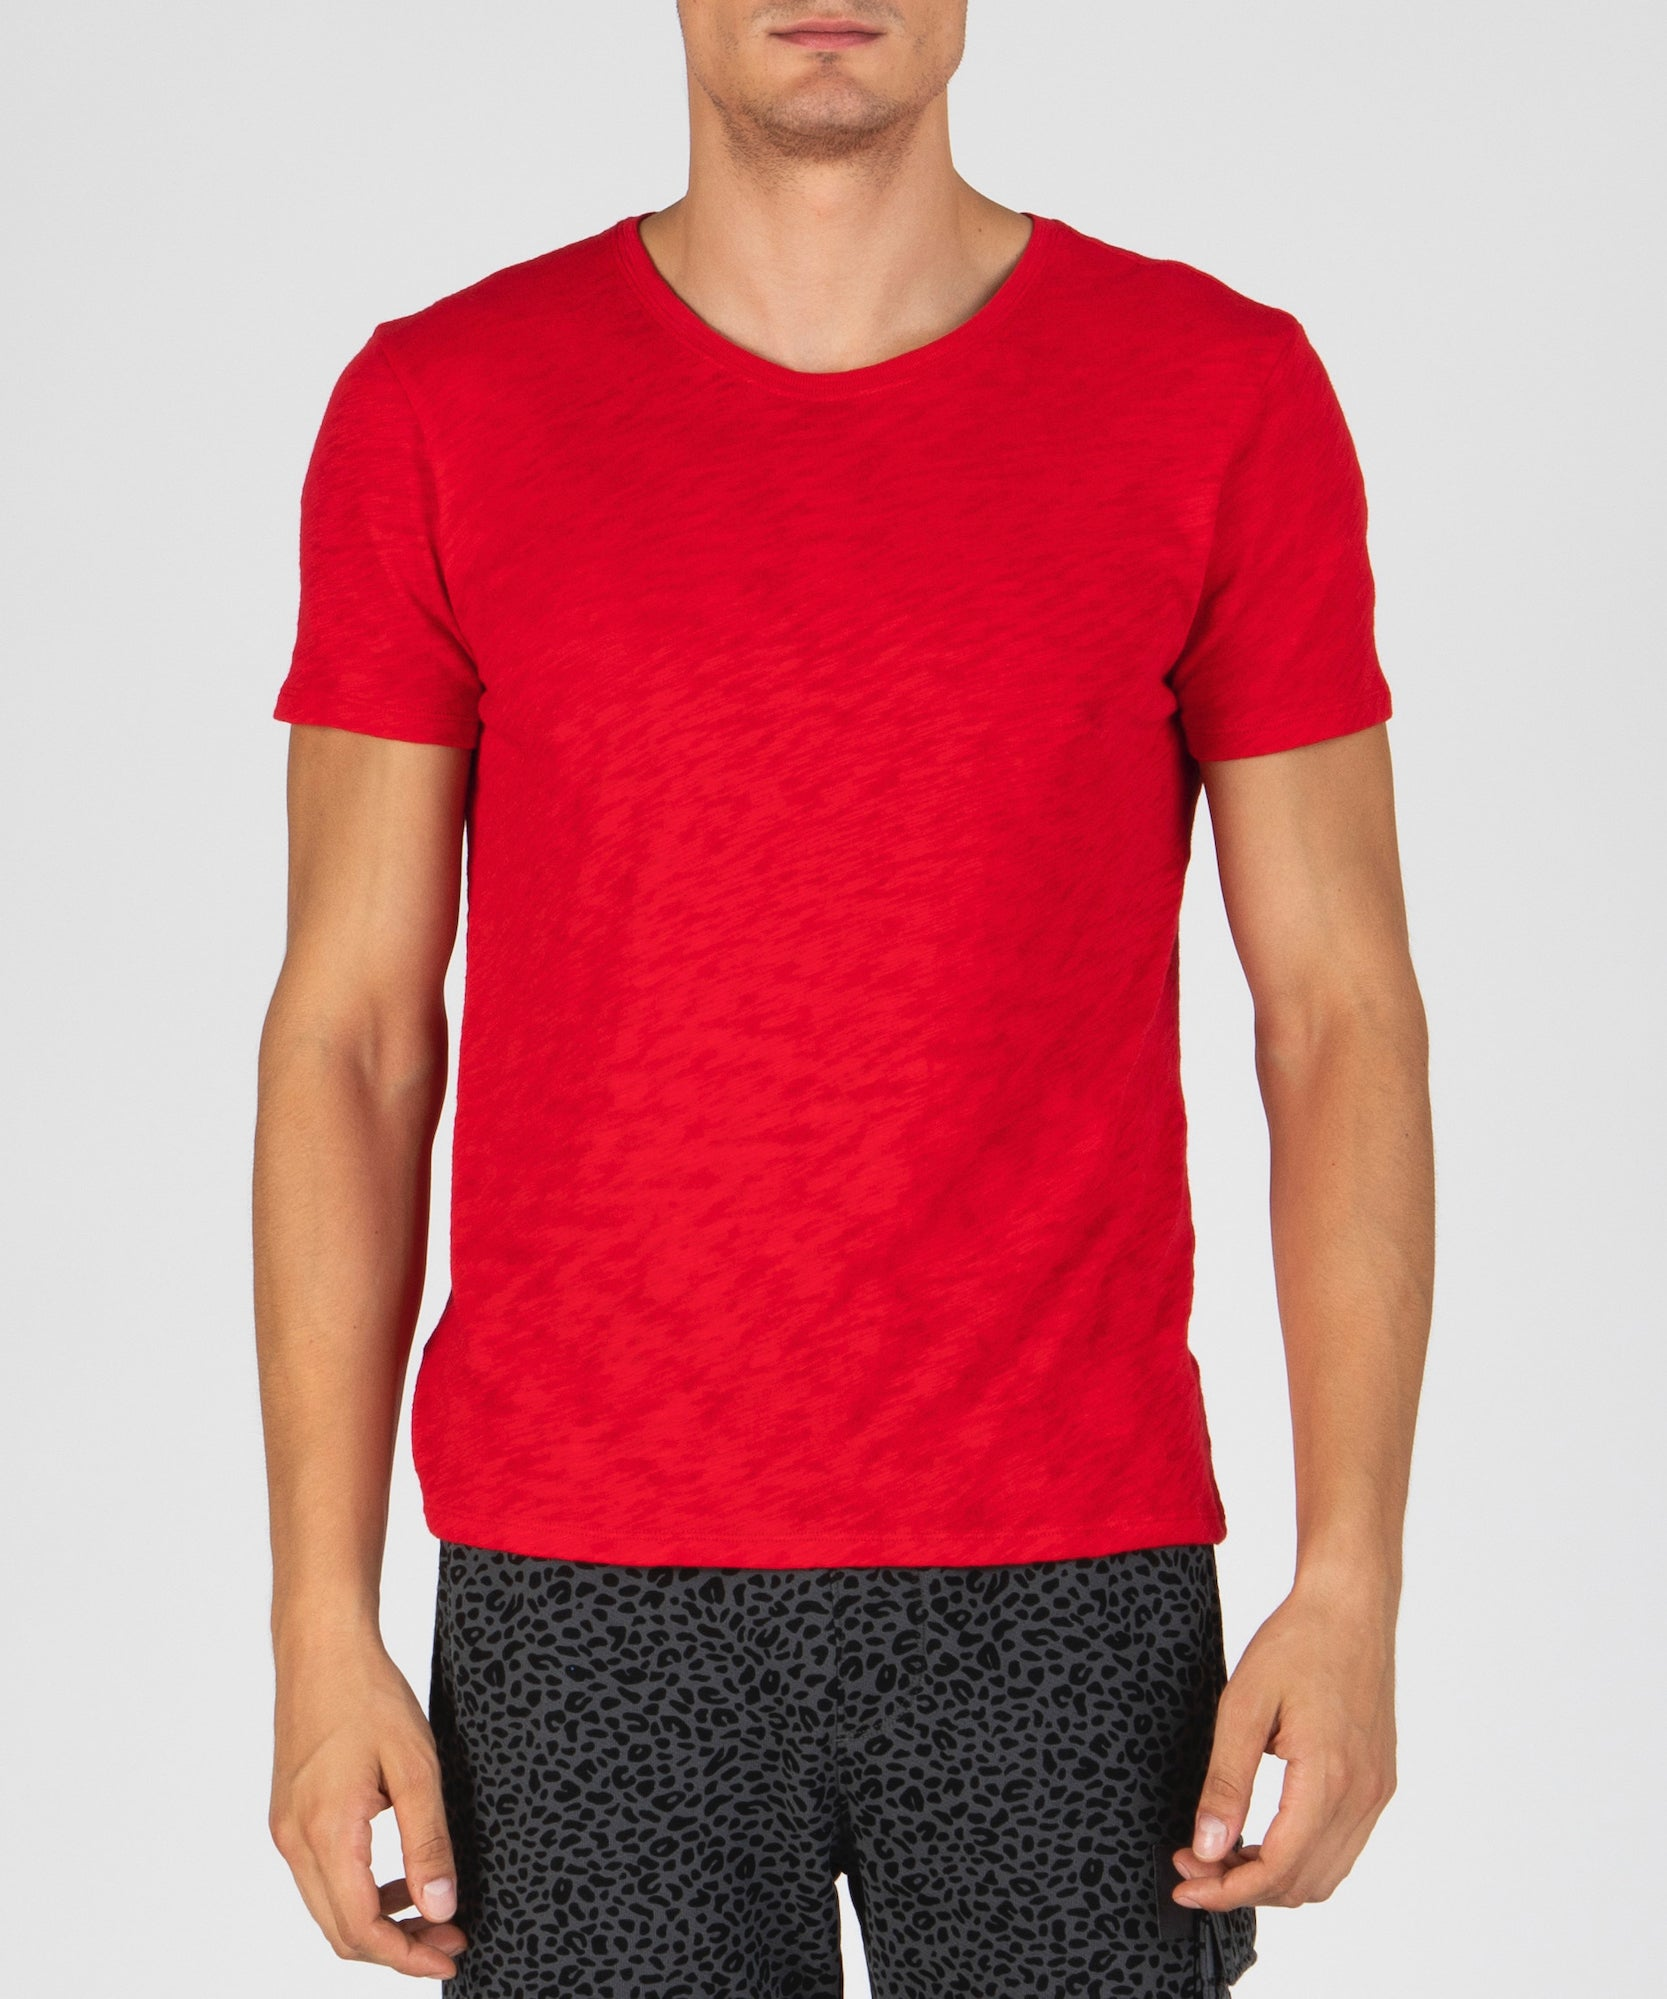 Tango Red Slub Jersey Crew Neck Tee - Men's Cotton Short Sleeve Tee by ATM Anthony Thomas Melillo